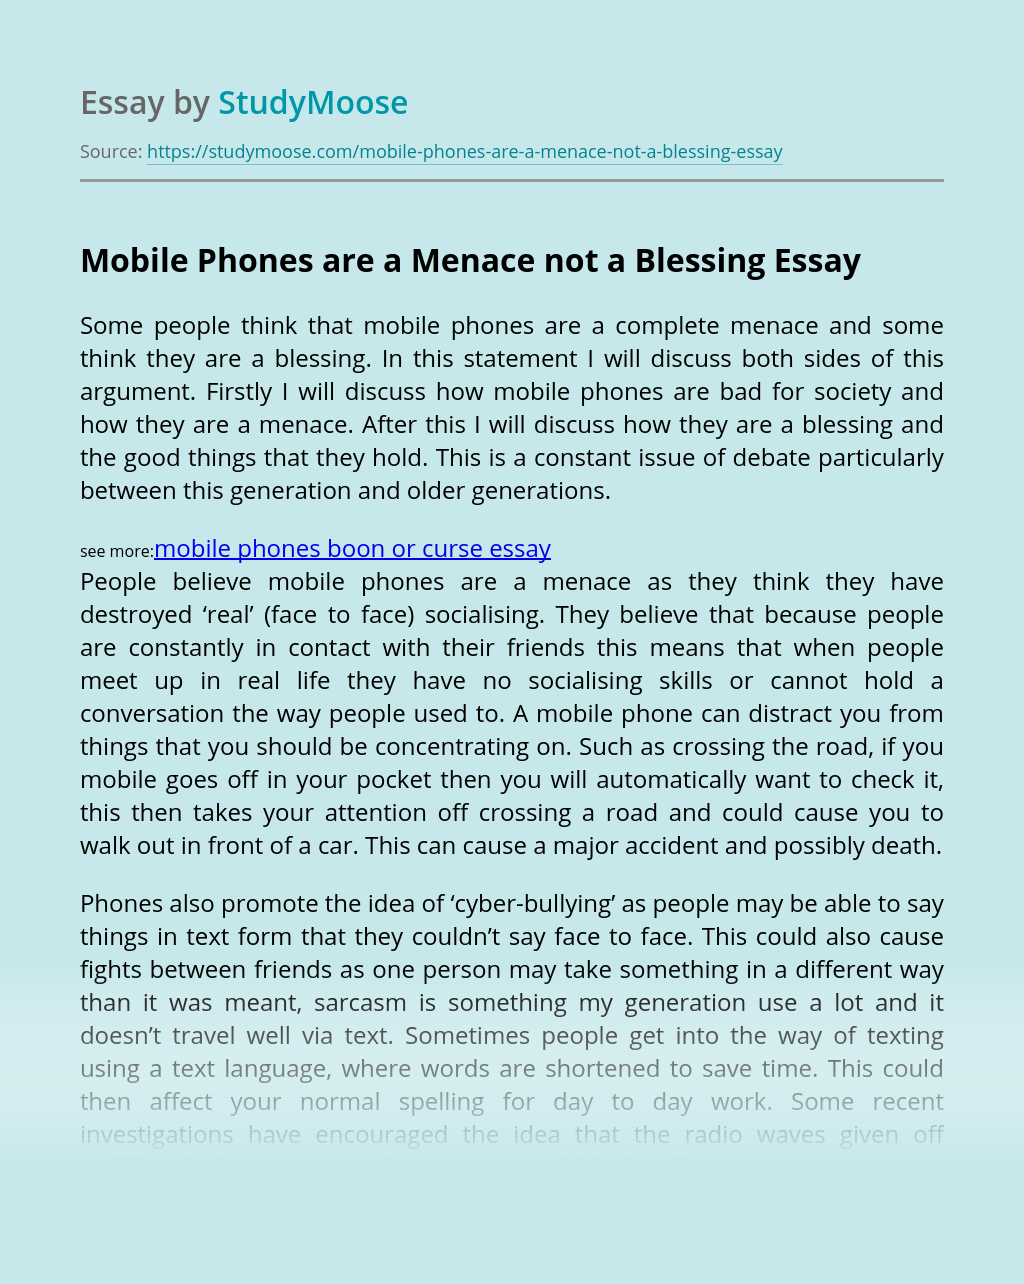 Mobile Phones are a Menace not a Blessing